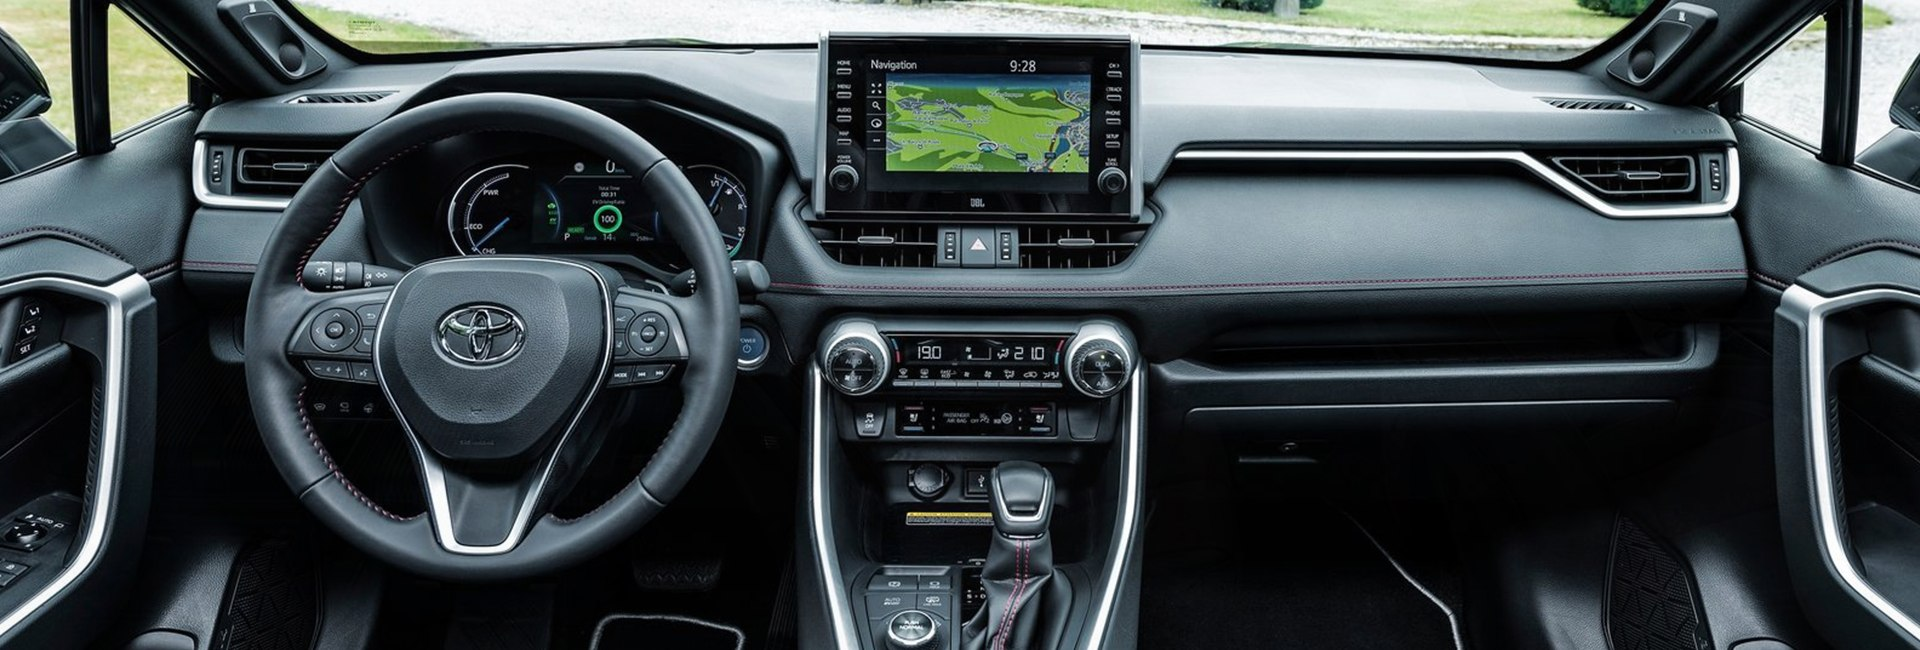 Close up view of a Toyota RAV4 Hybrid's steering wheel and dashboard